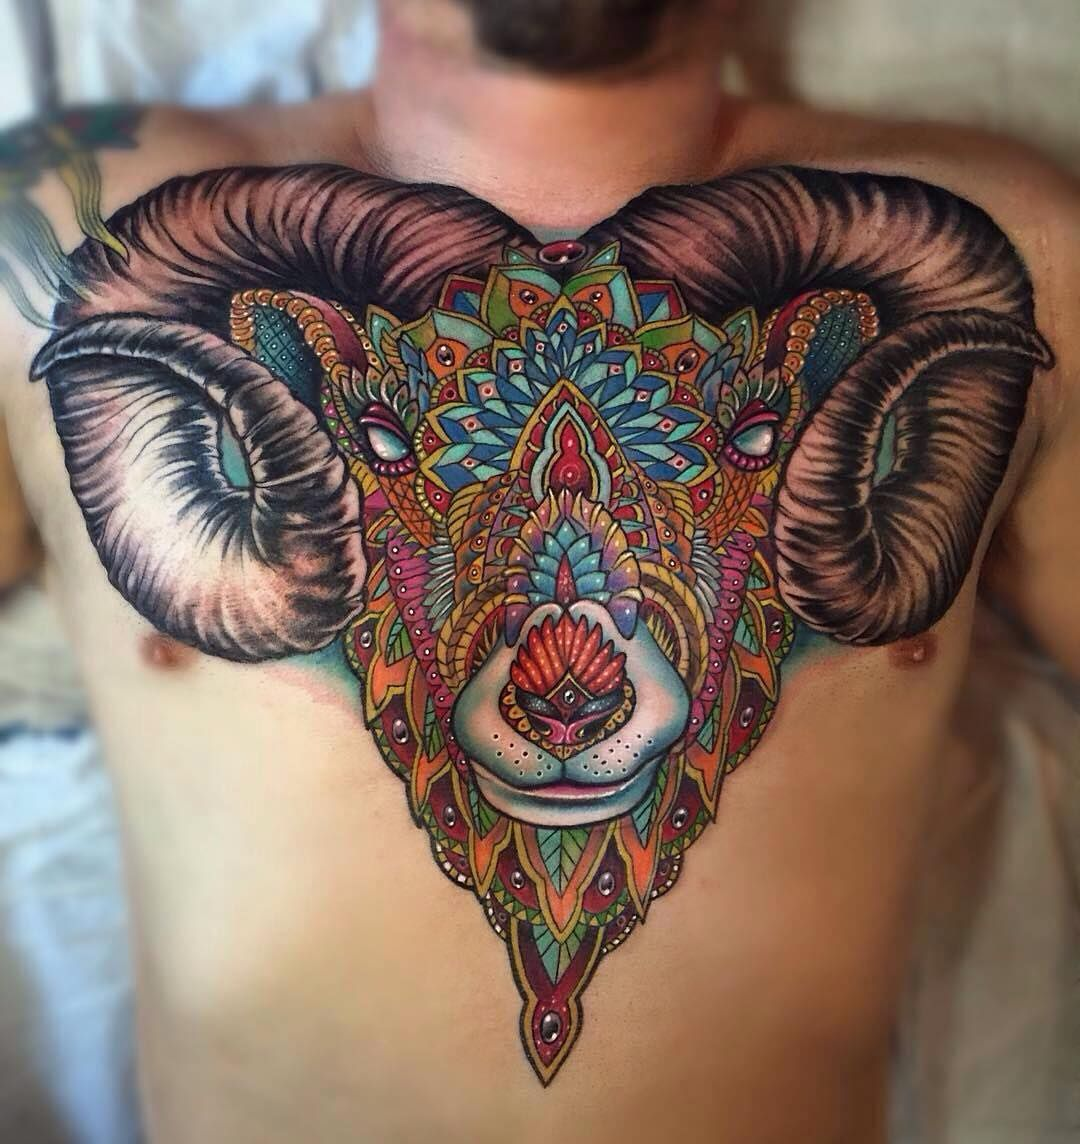 Such A Gorgeous Rams Head Tattoo By The Awesome Johnnysmithart Who Is Always Inspiring Us With His Paintings And Ta Aries Tattoo Chest Piece Tattoos Tattoos